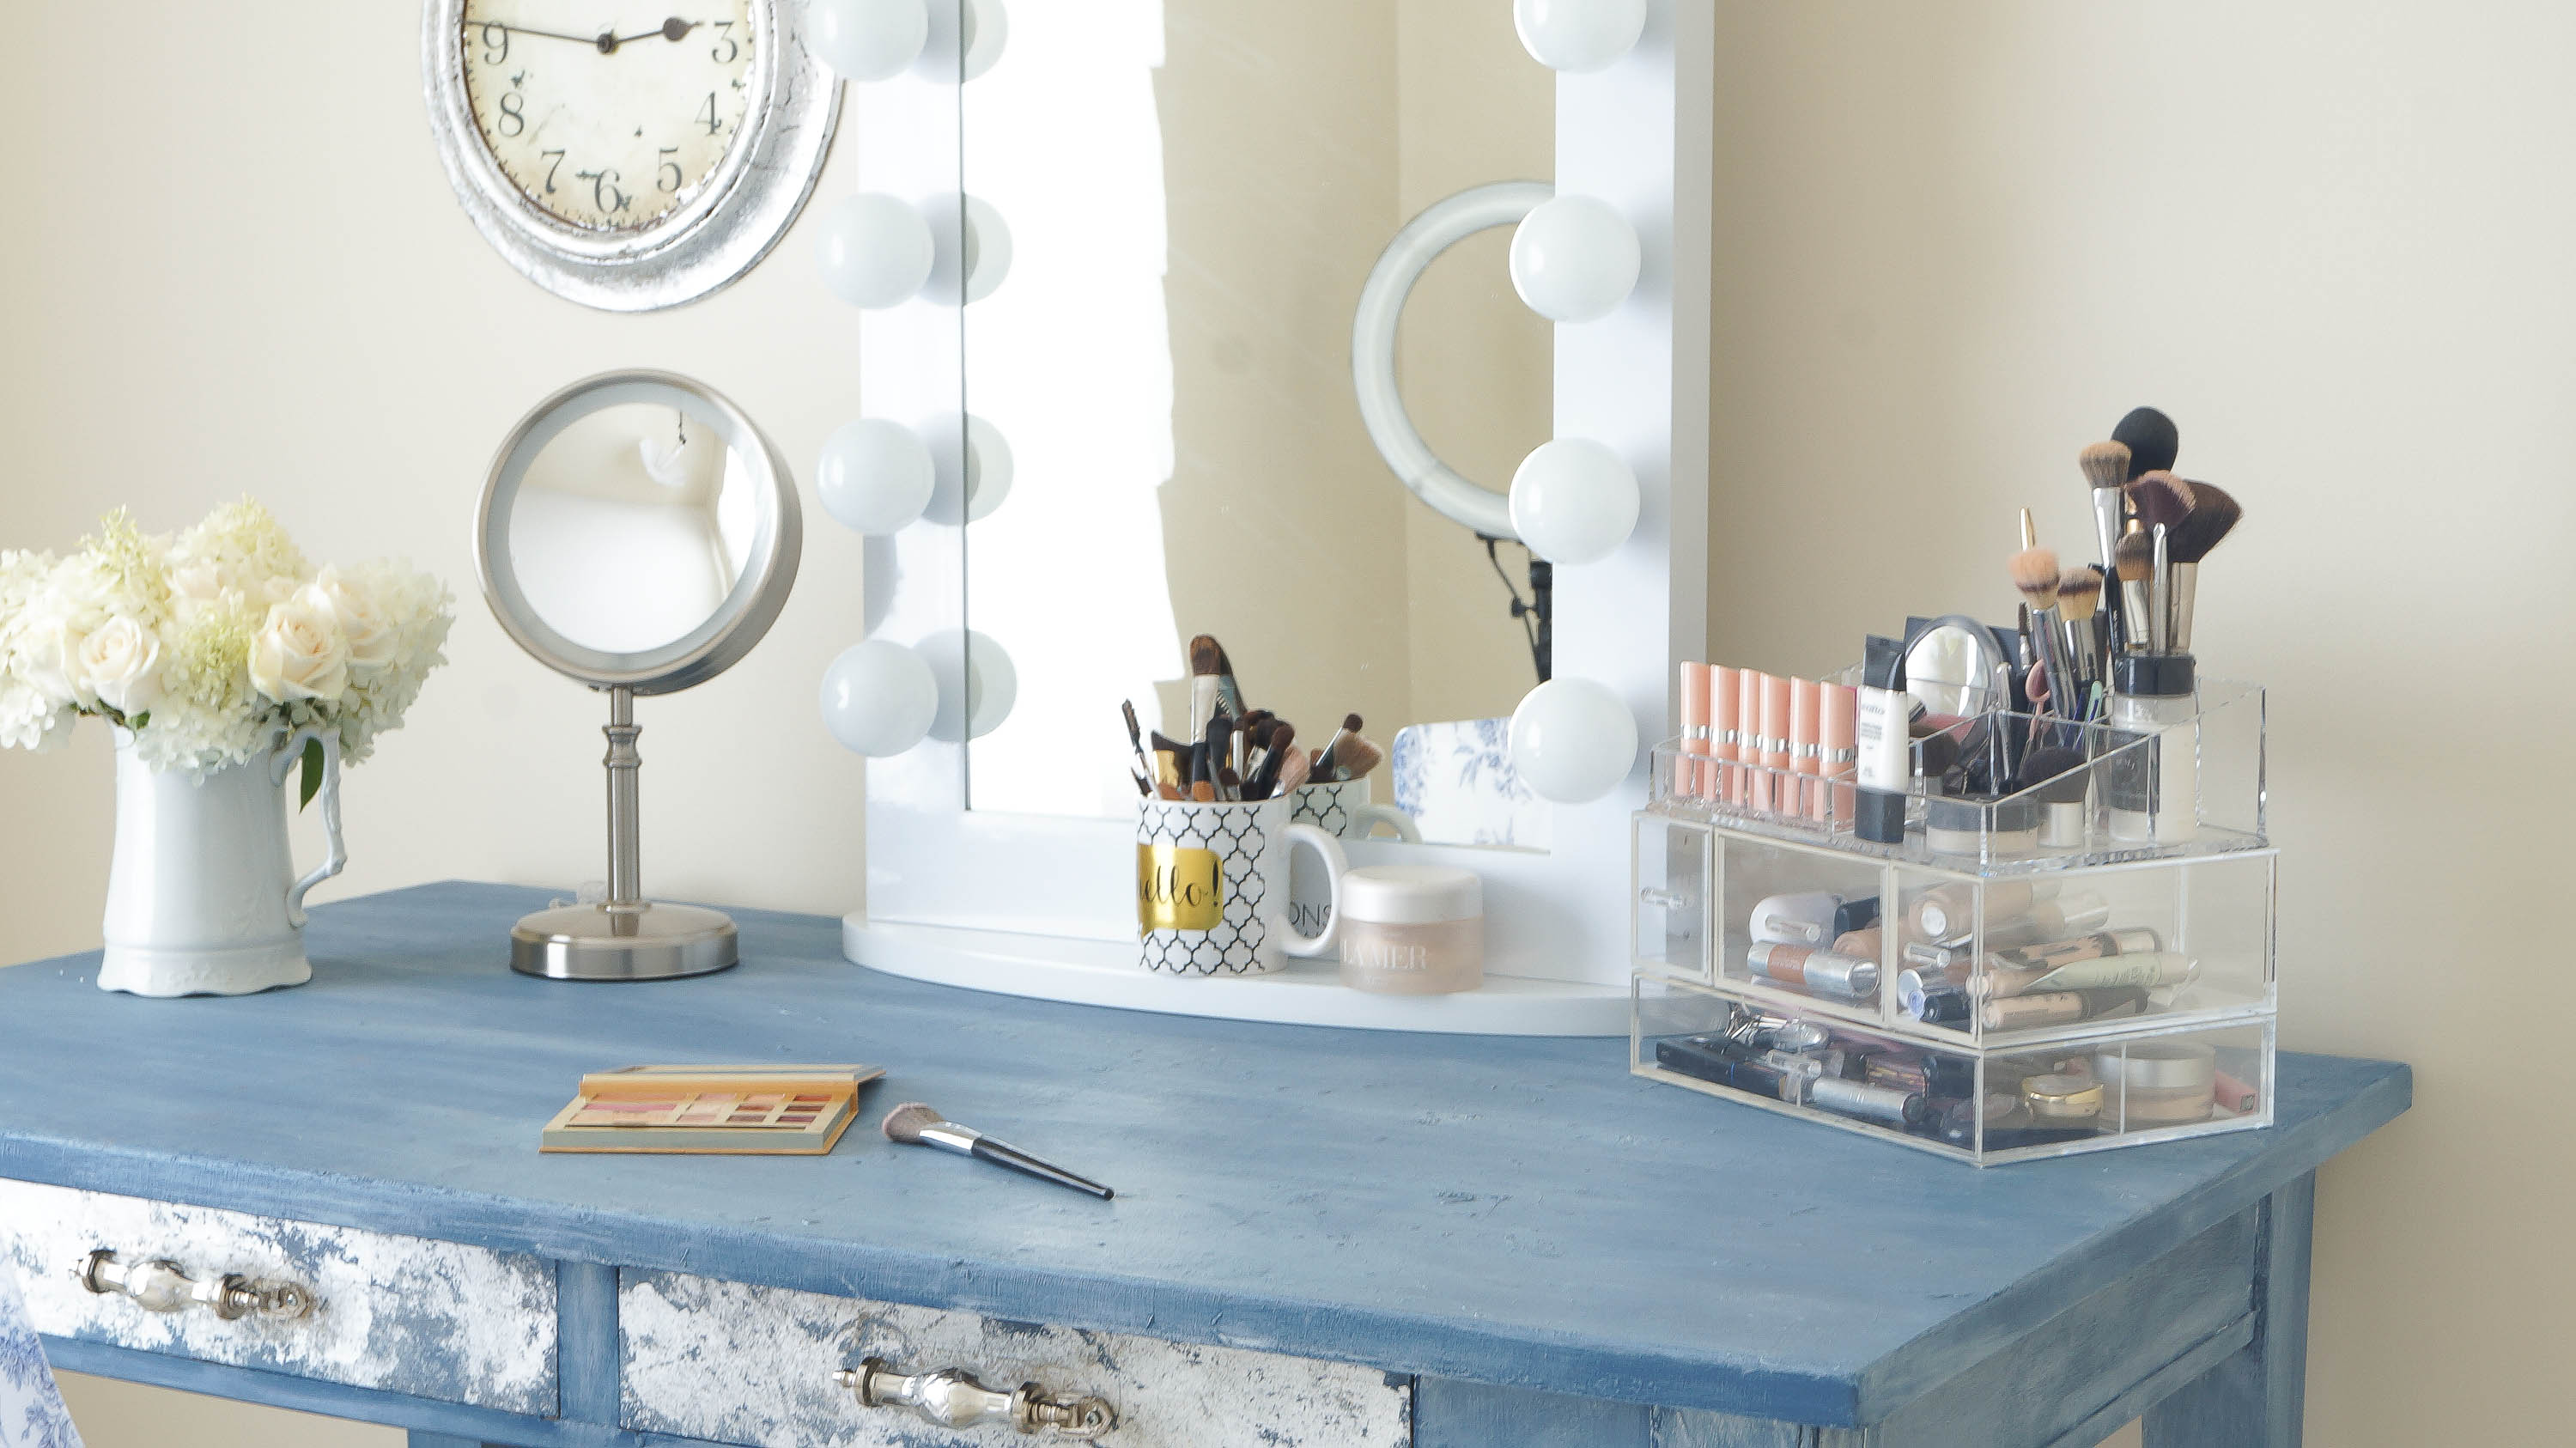 Makeup Mirror In My New Girly Room - White Lace Cottage on Make Up Room Design  id=31475